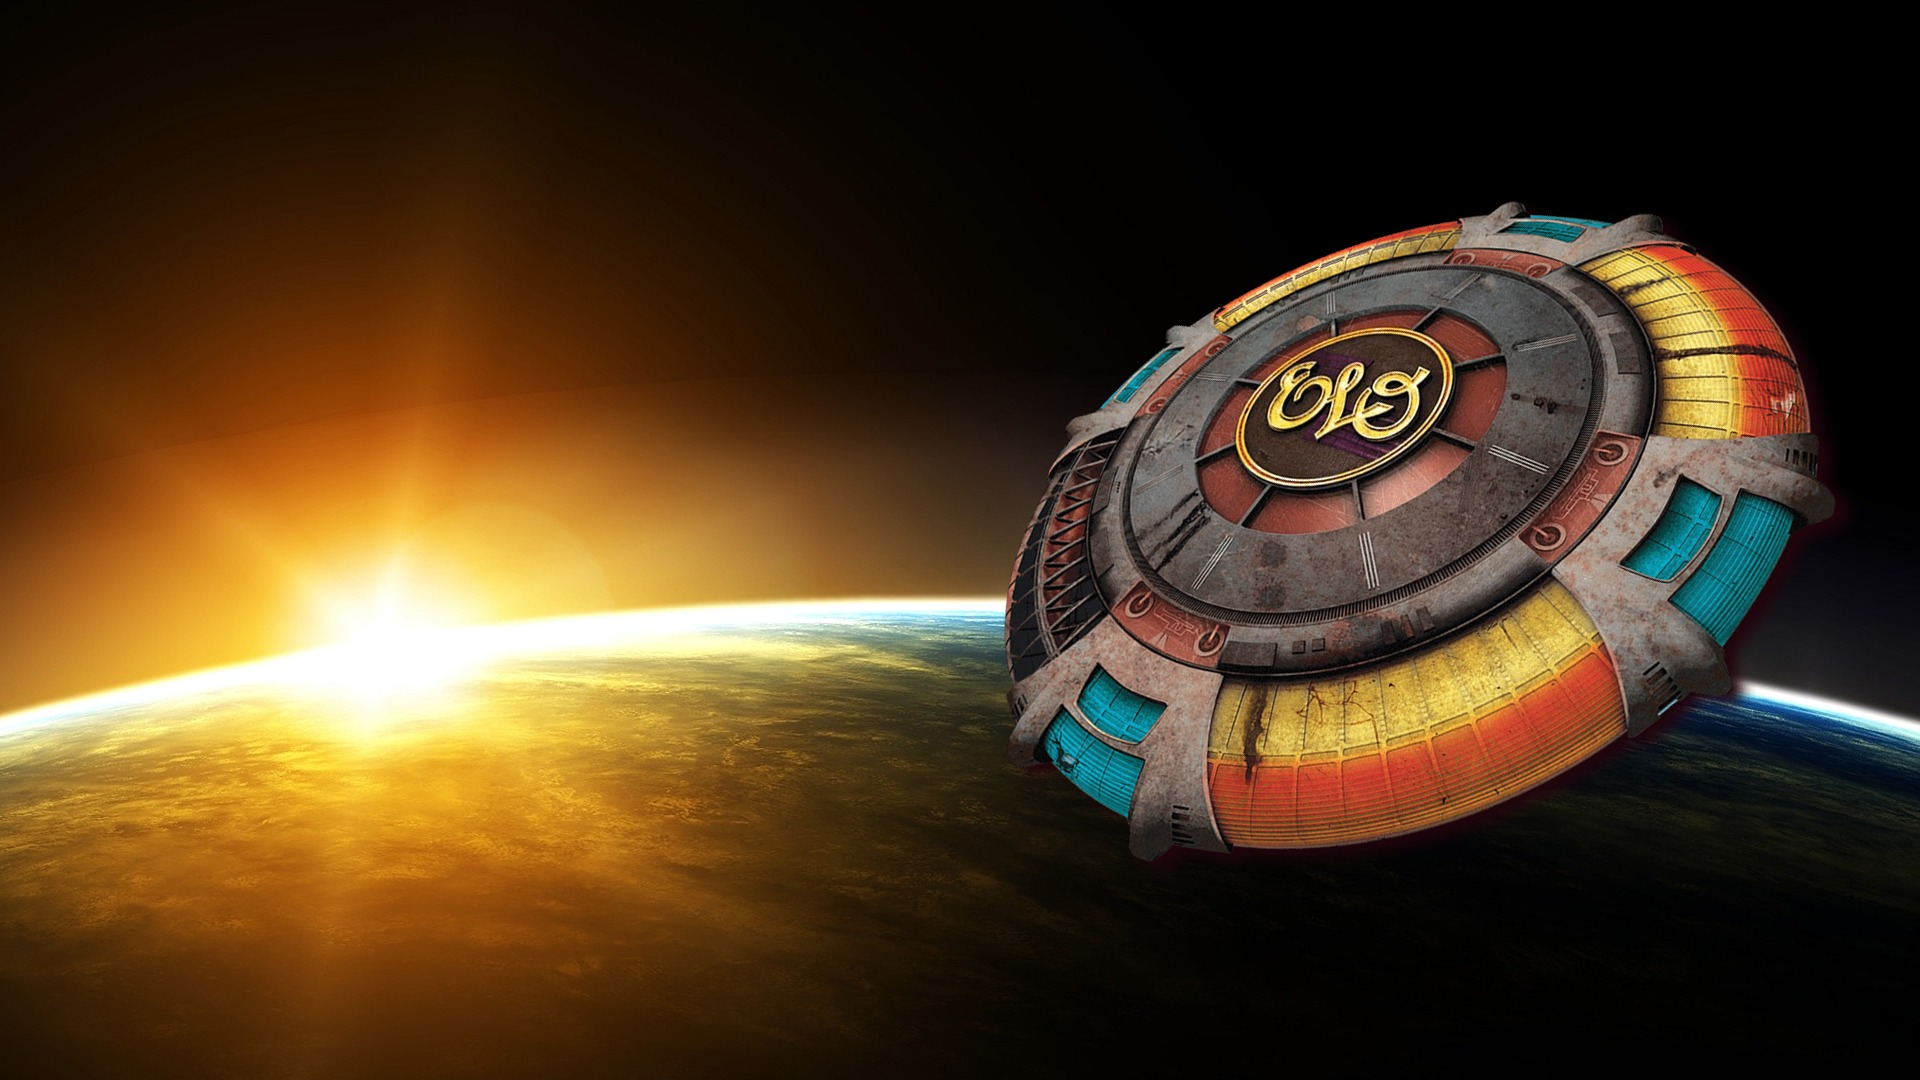 Elo High Quality Background on Wallpapers Vista